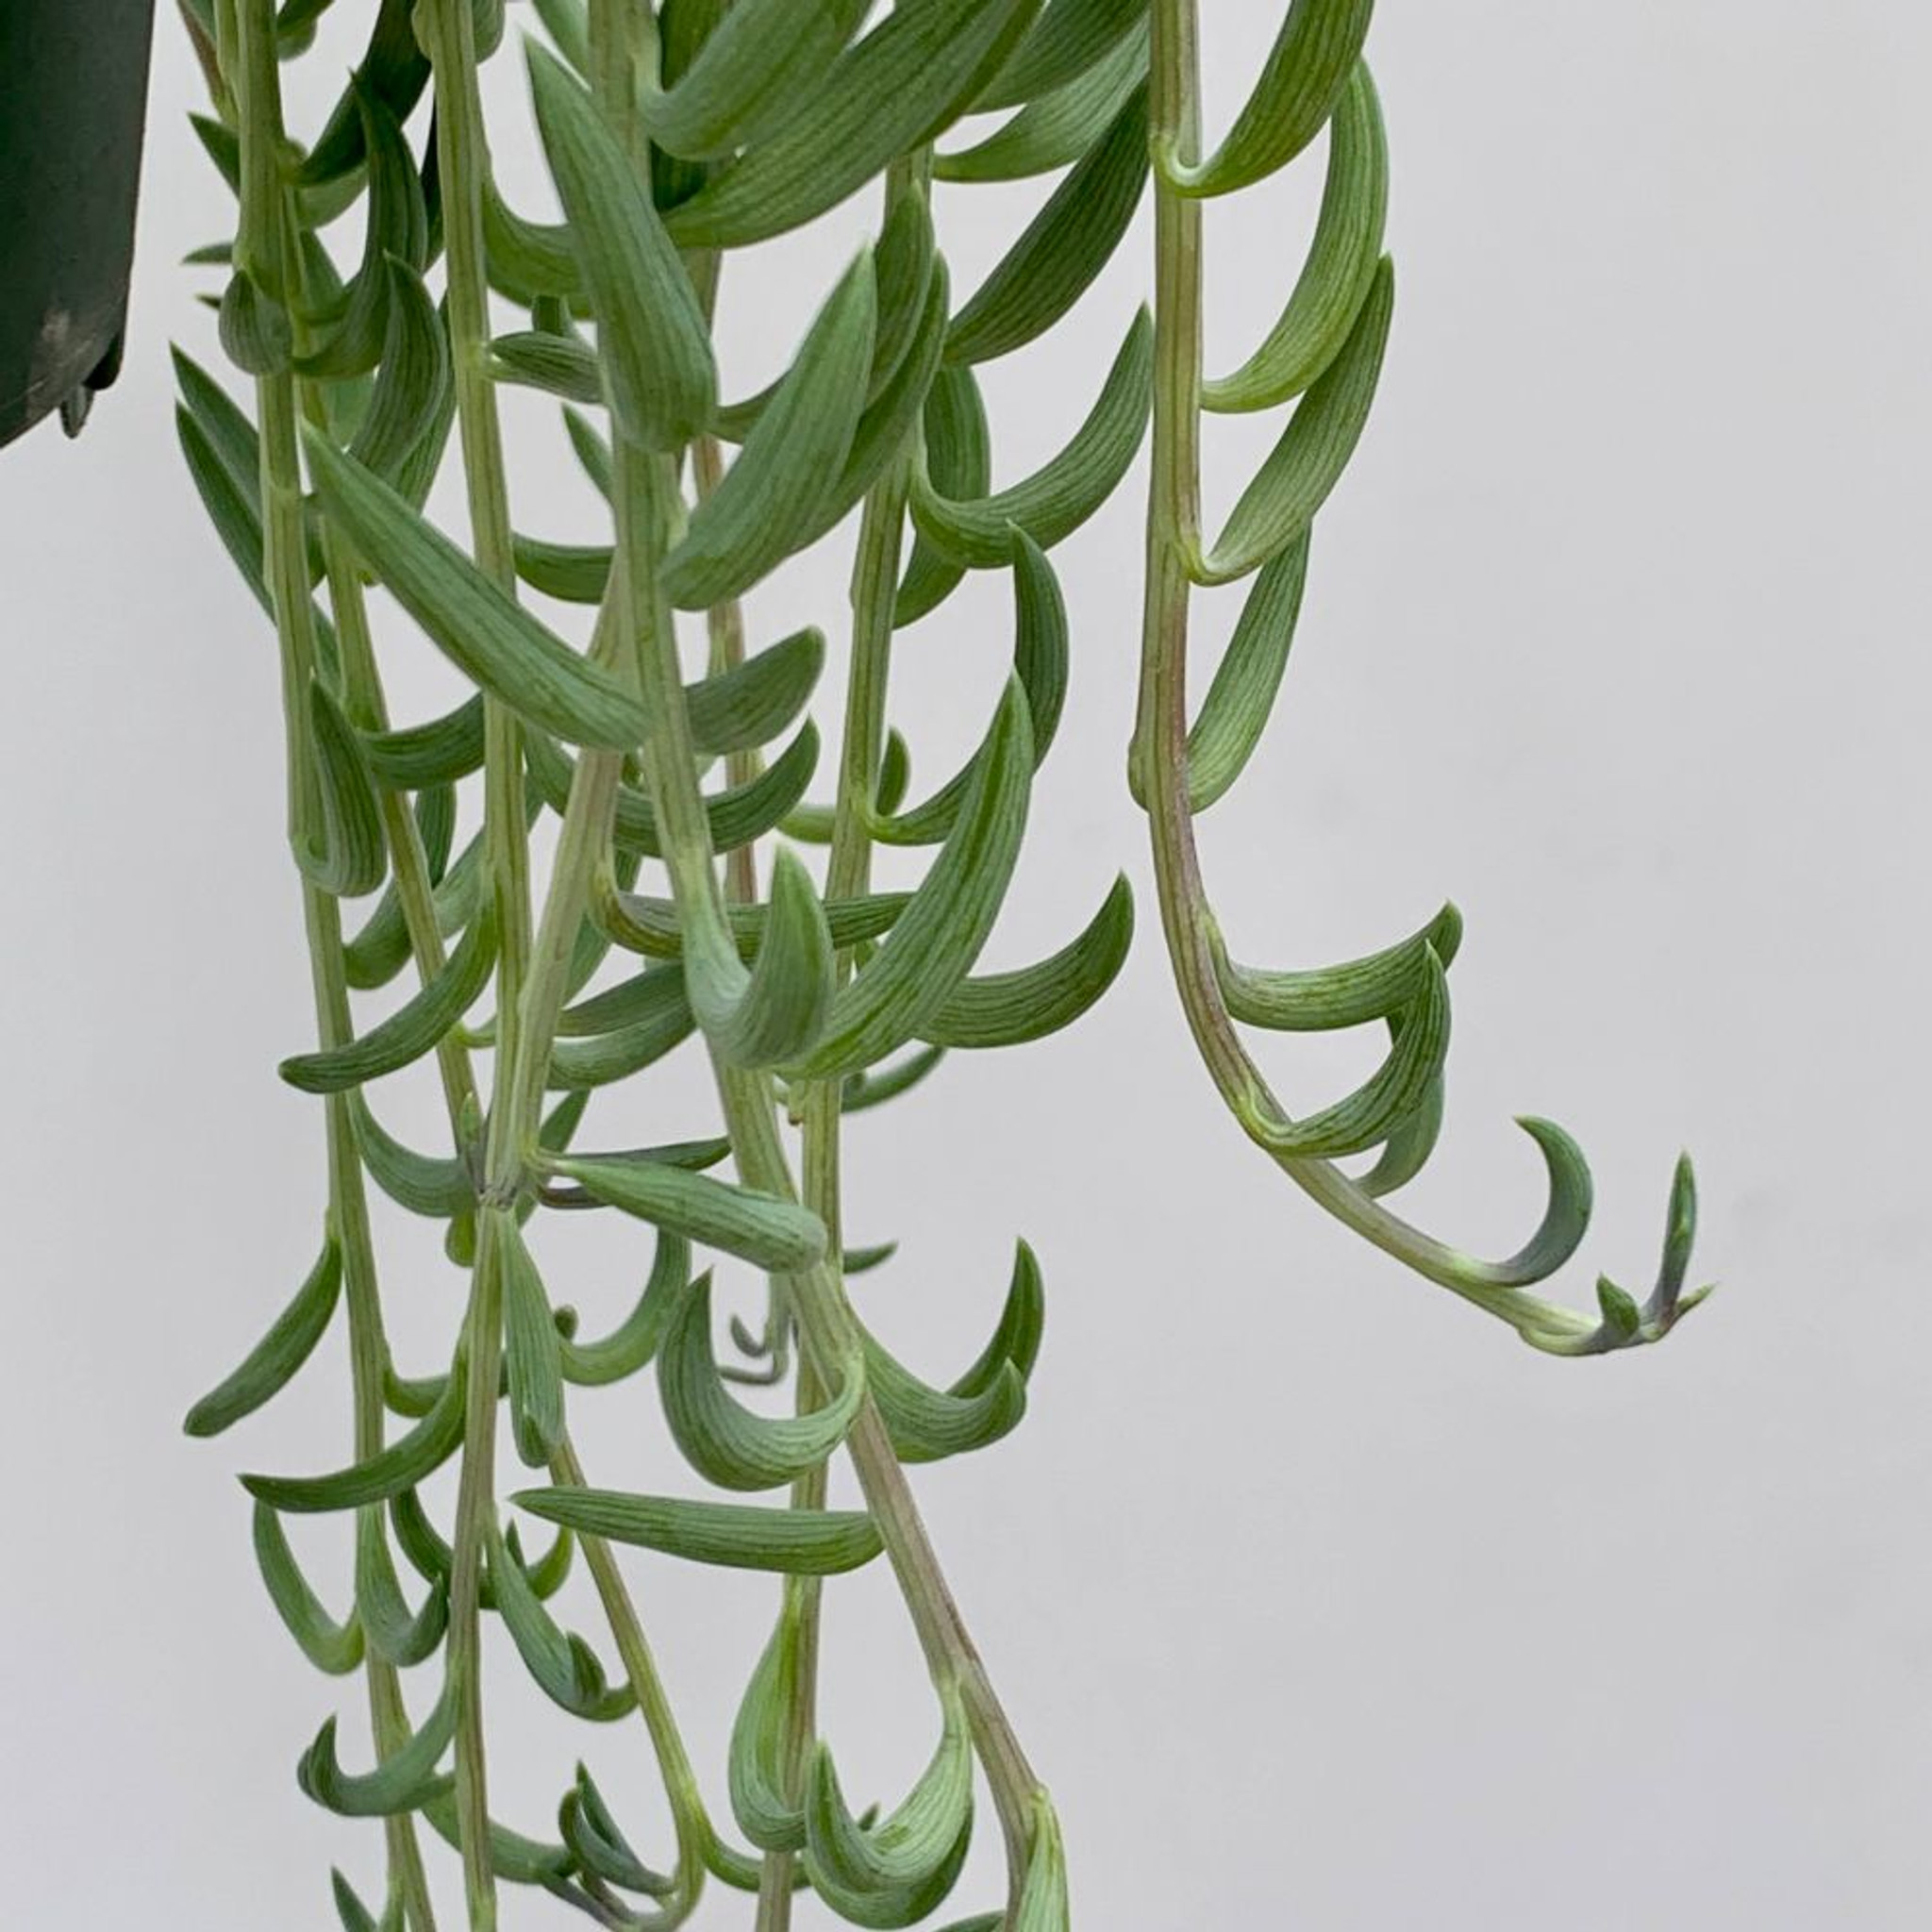 'Fish Hook' (Senecio radicans) [XL]